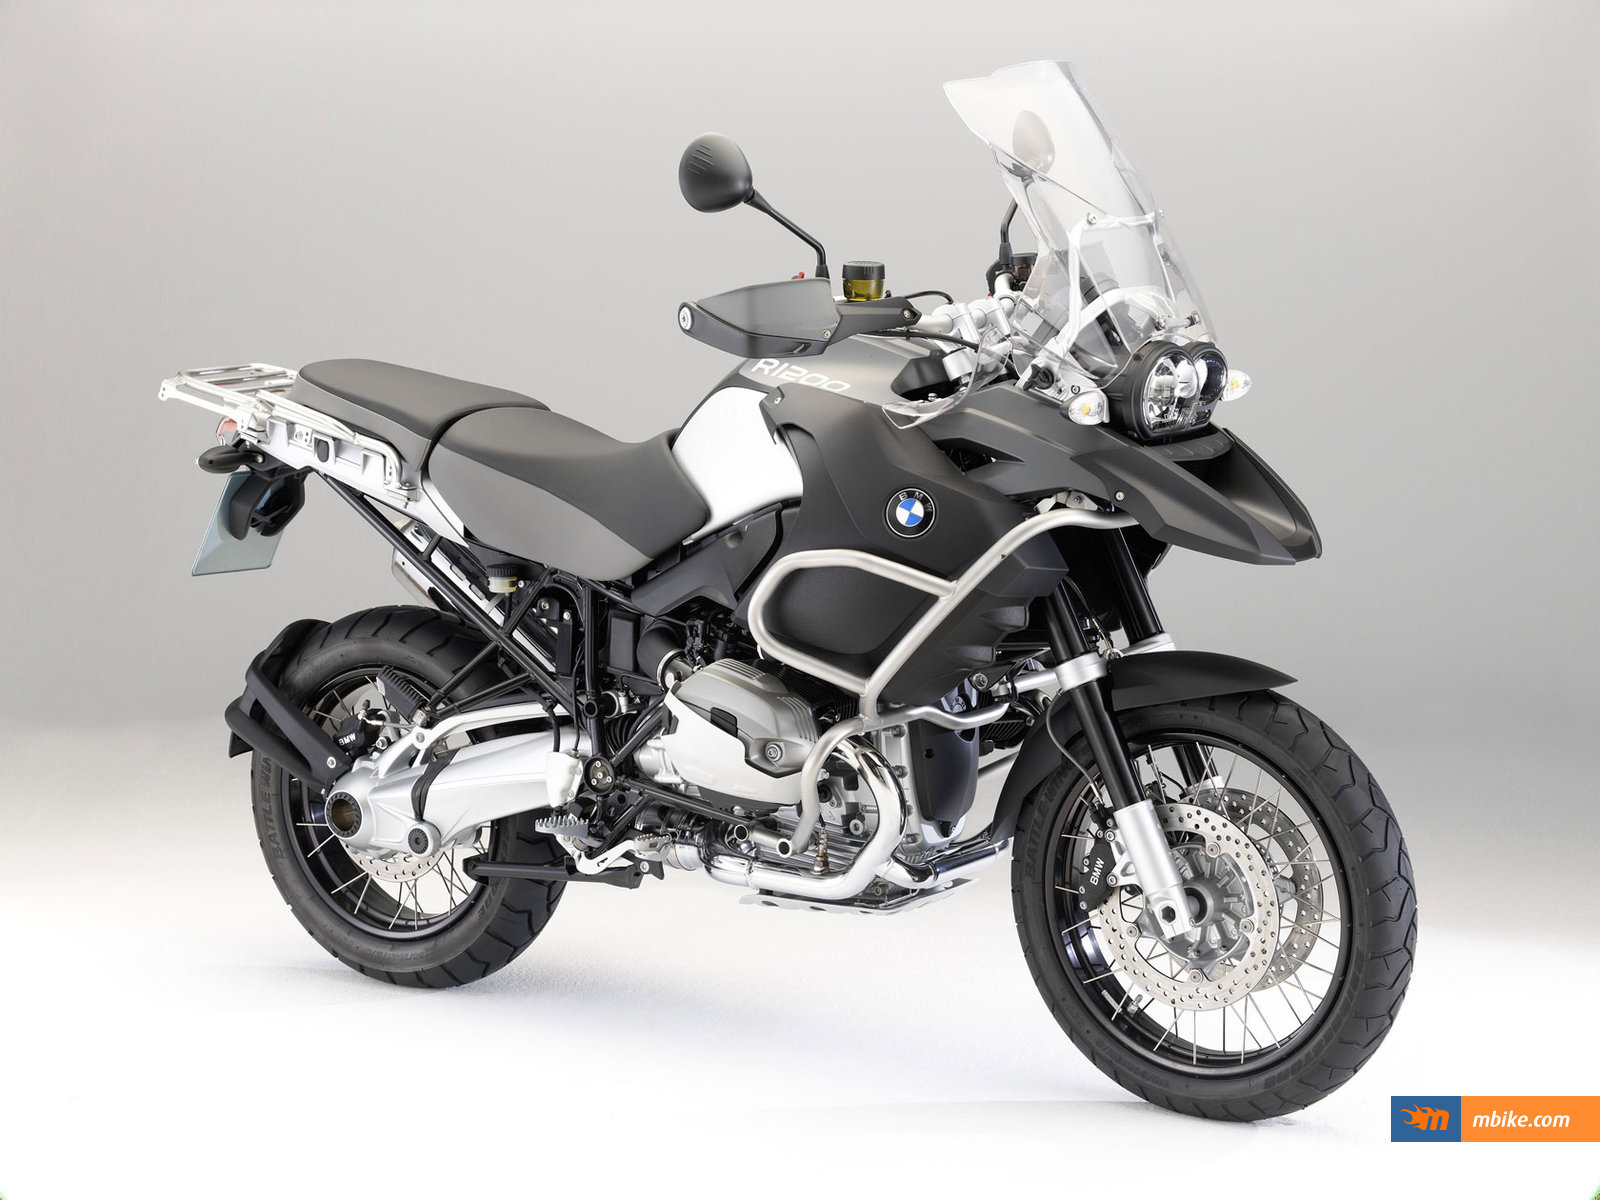 2010 BMW R1200GS Adventure Wallpaper - Mbike.com